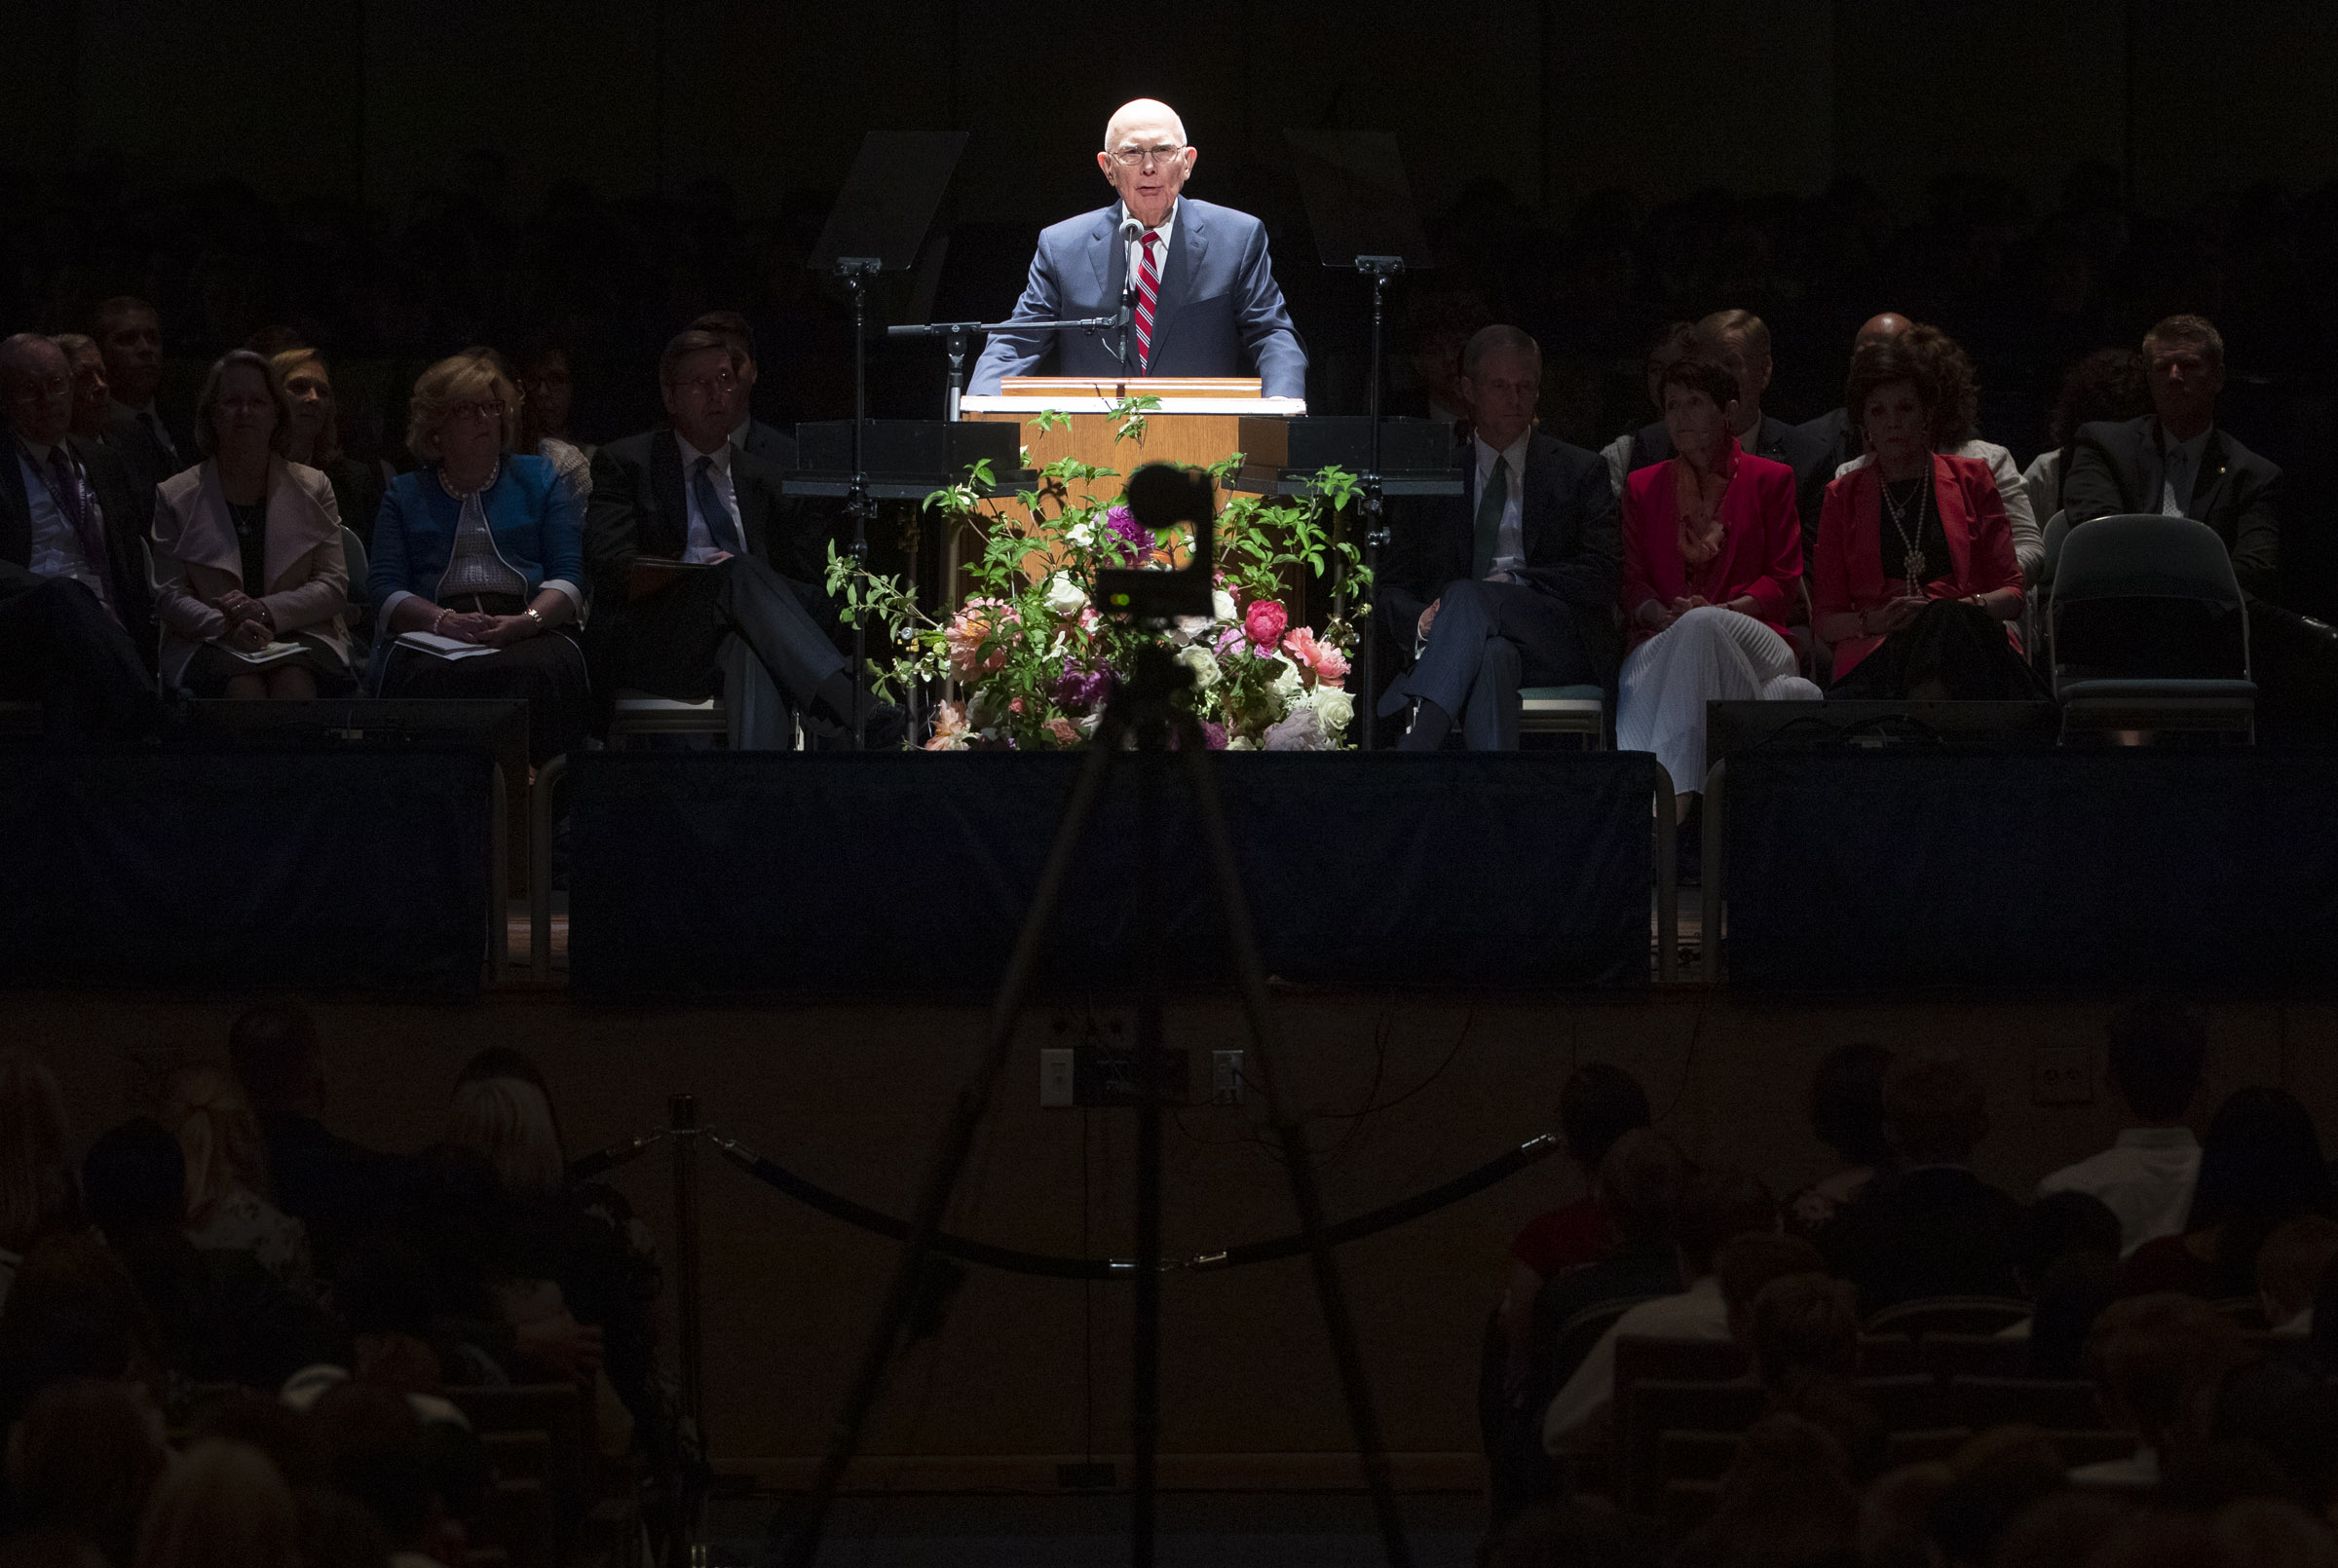 President Dallin H. Oaks, first counselor in the First Presidency of The Church of Jesus Christ of Latter-day Saints, speaks to youth during a devotional at the Interstake Center on the Oakland California Temple grounds on Saturday, June 15, 2019.